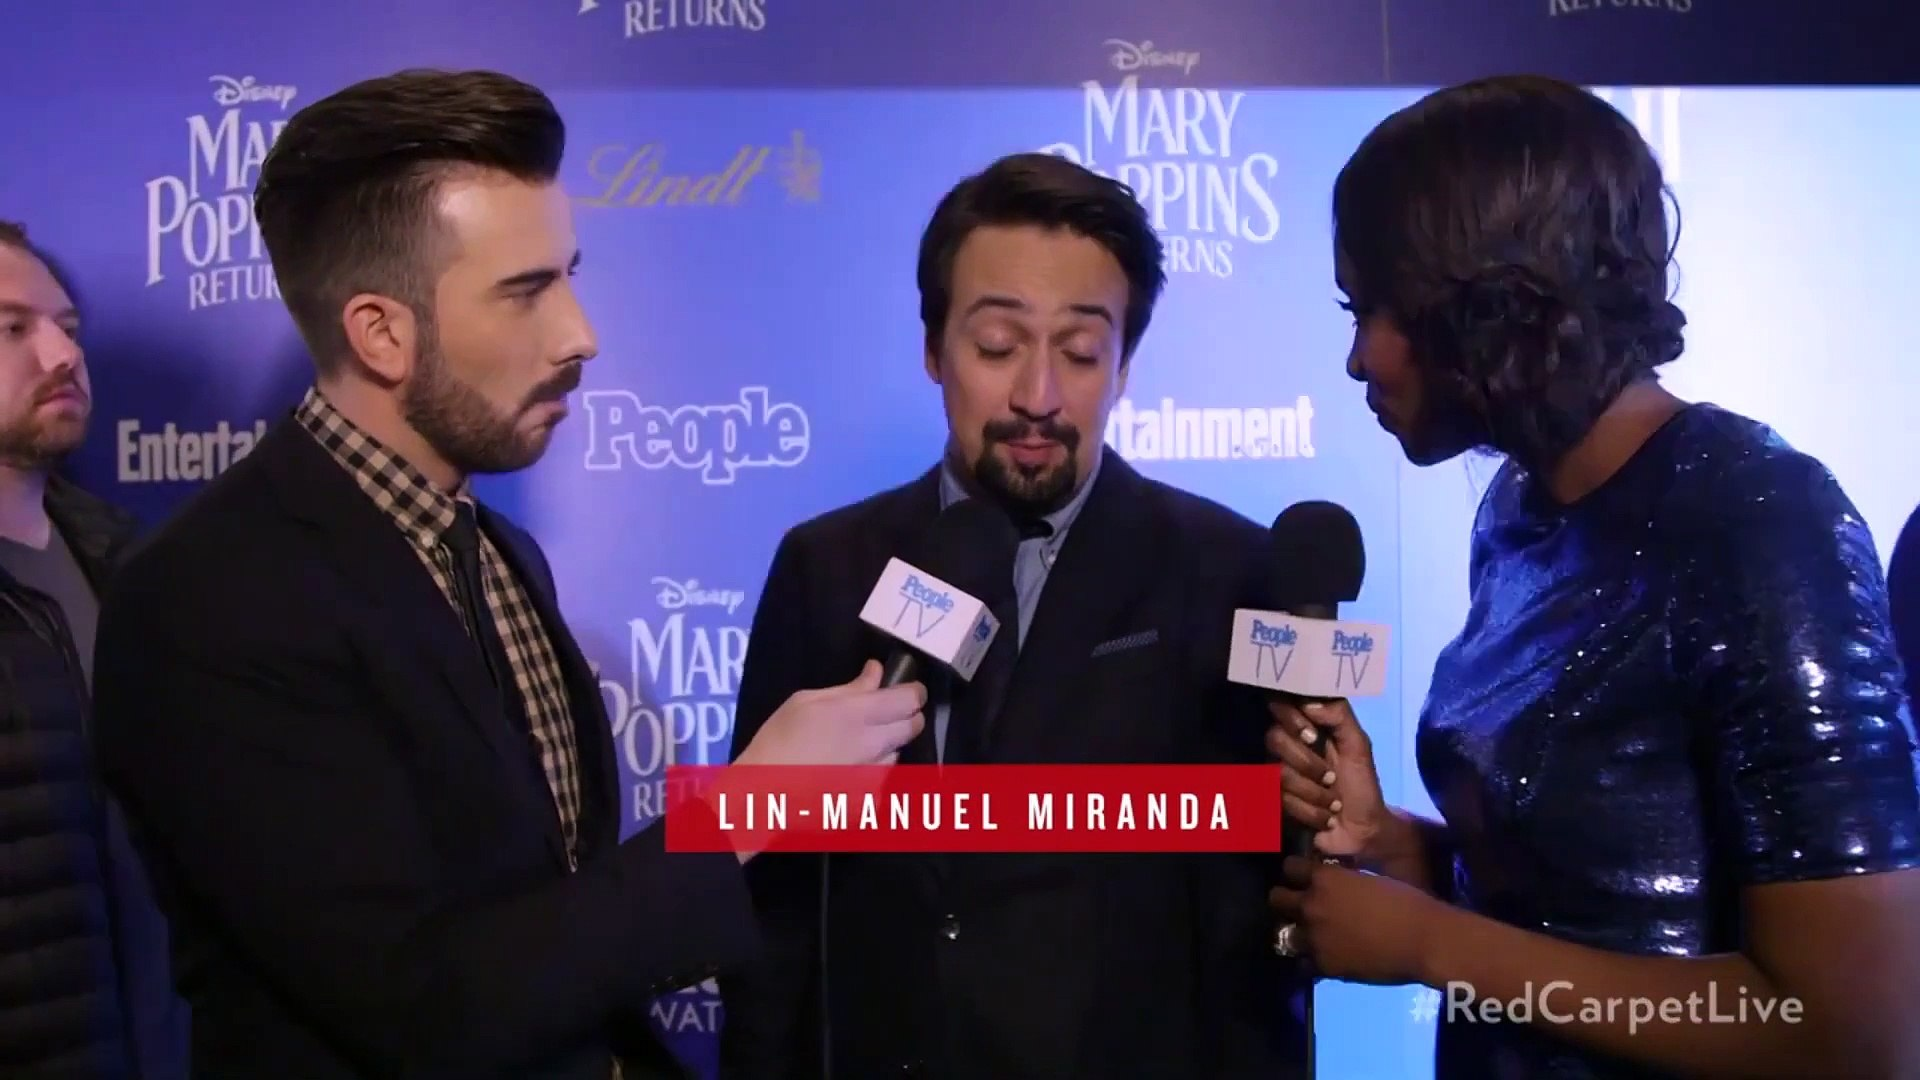 Lin-Manuel Miranda Discusses Excitement About Mary Poppins Returns | PeopleTV | Entertainment Weekly